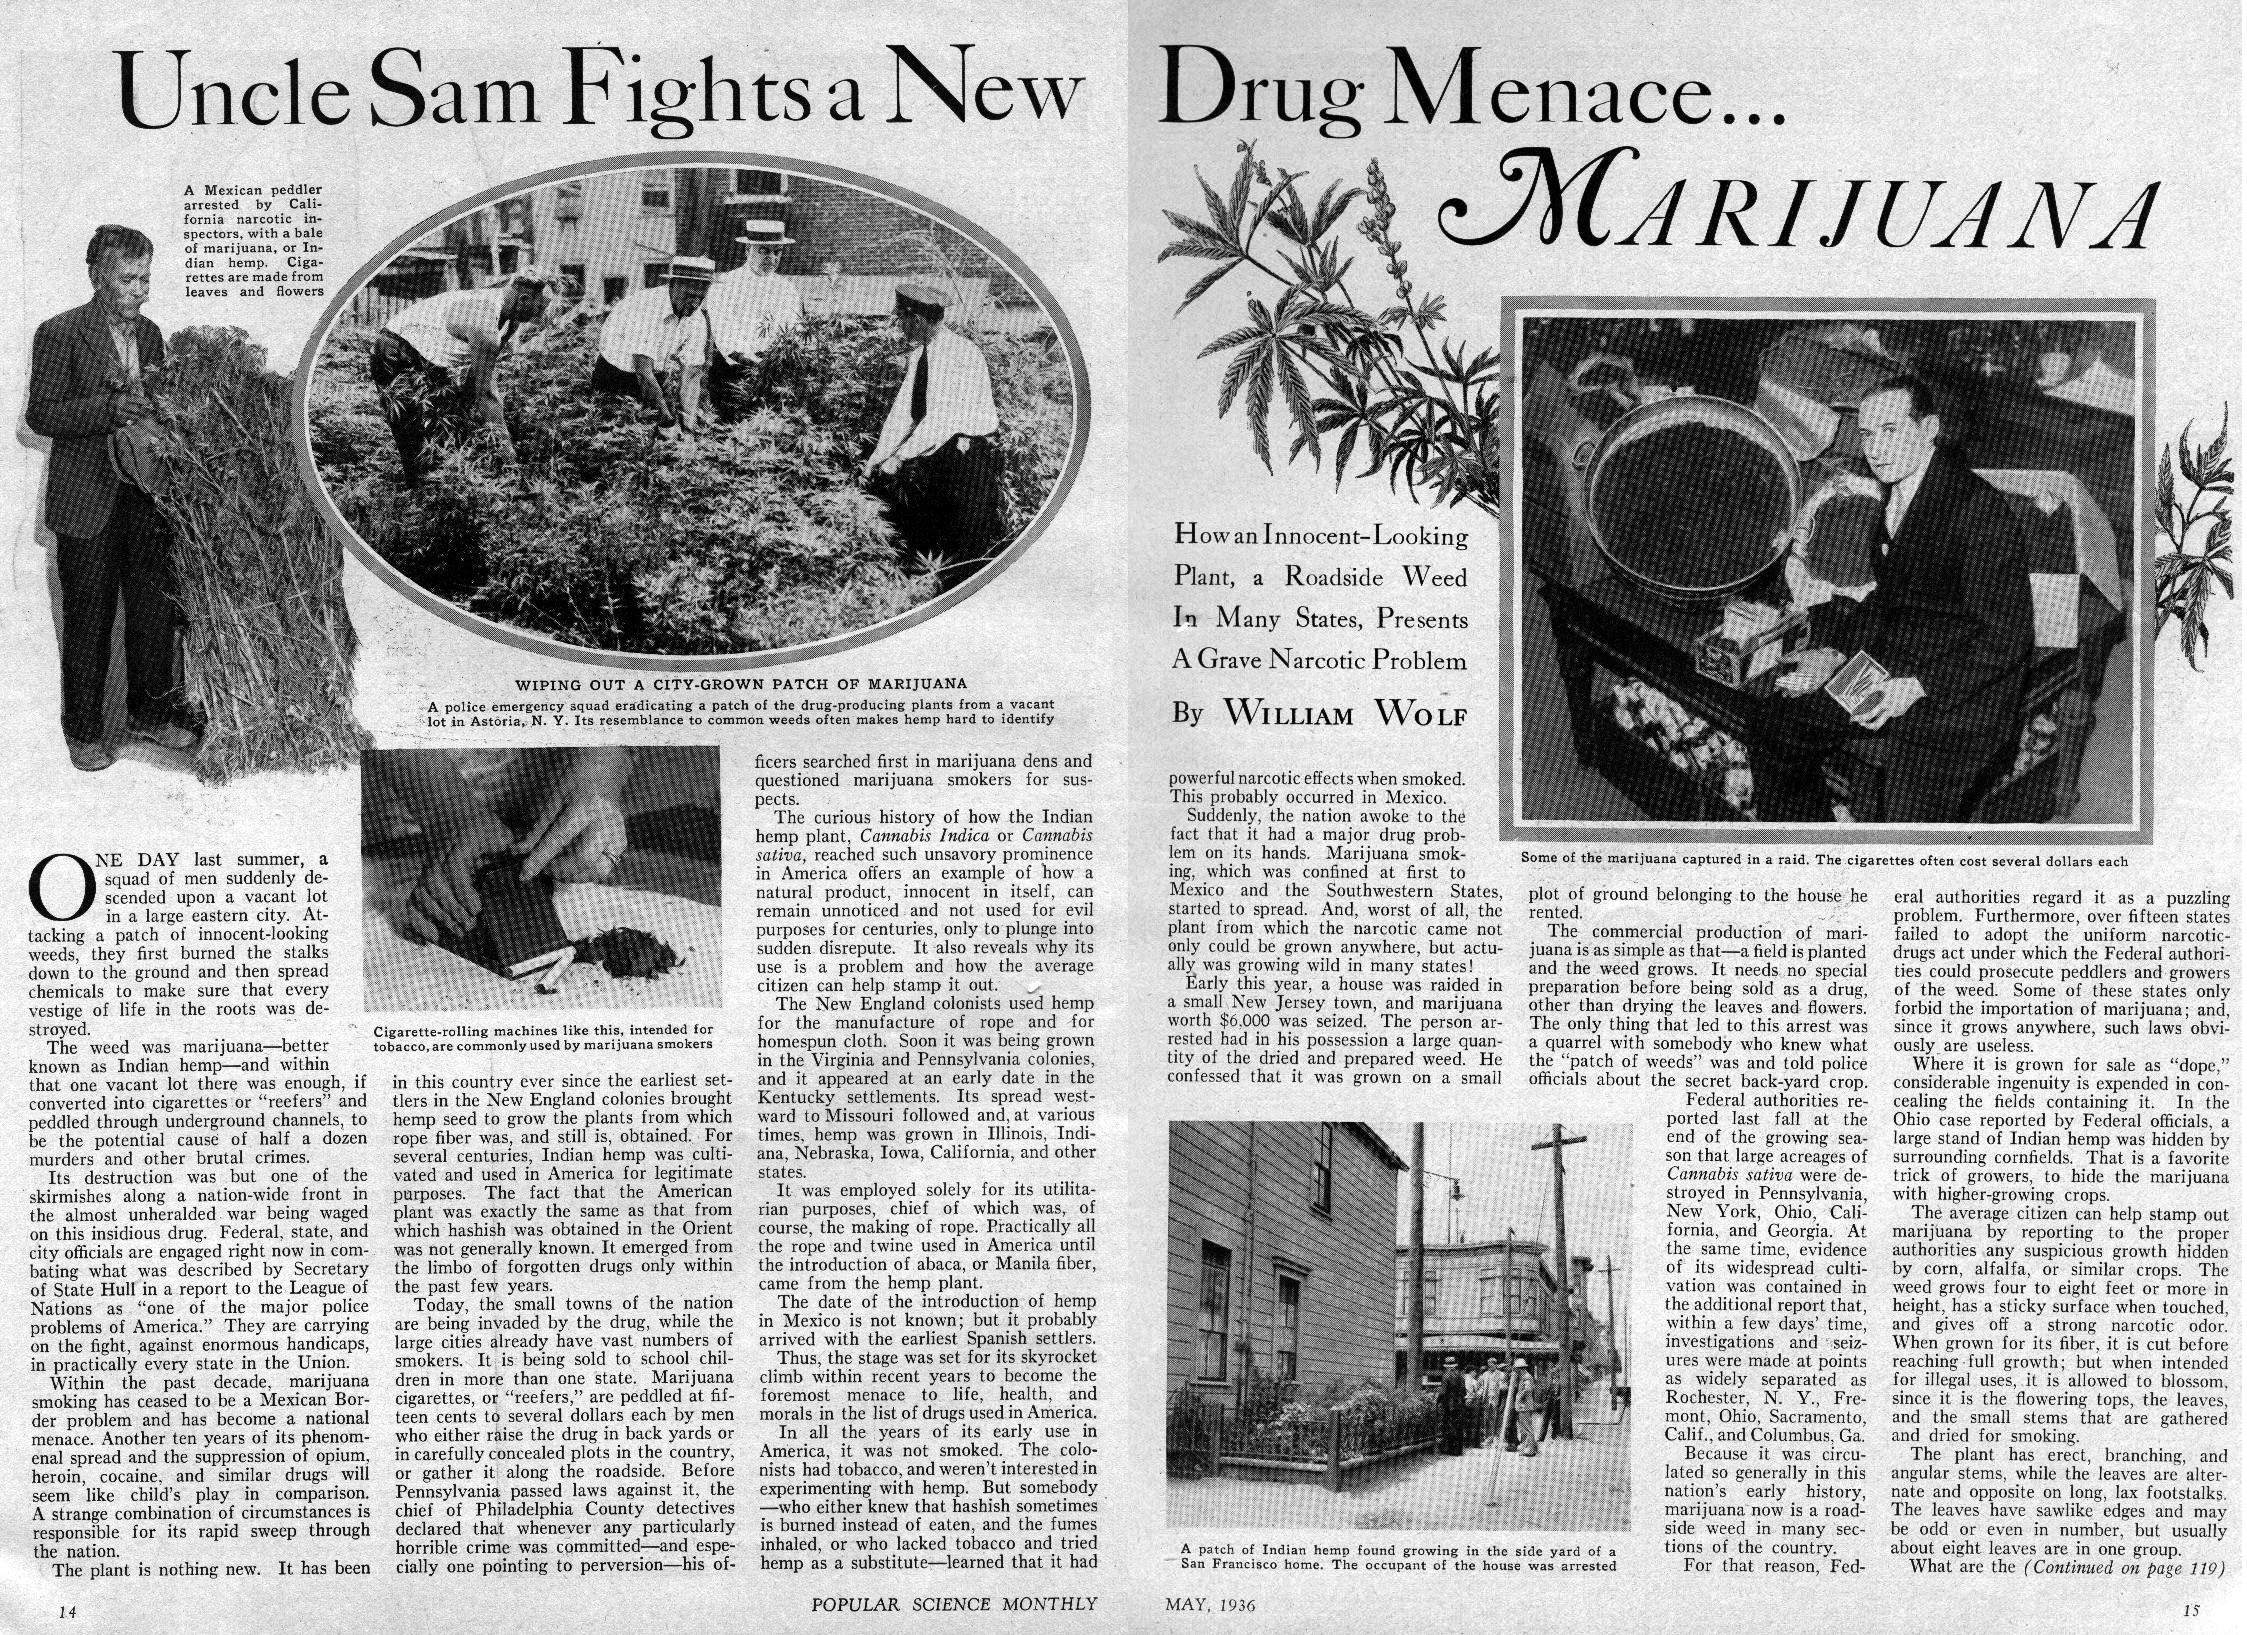 "Popular Mechanix magazine 1937: ""The date of the introduction of hemp in Mexico is not known; but it probably arrived with the earliest Spanish settlers. Thus, the stage was set for its skyrocket climb within recent years to become the foremost menace to life, health, and morals in the list of drugs used in America."""